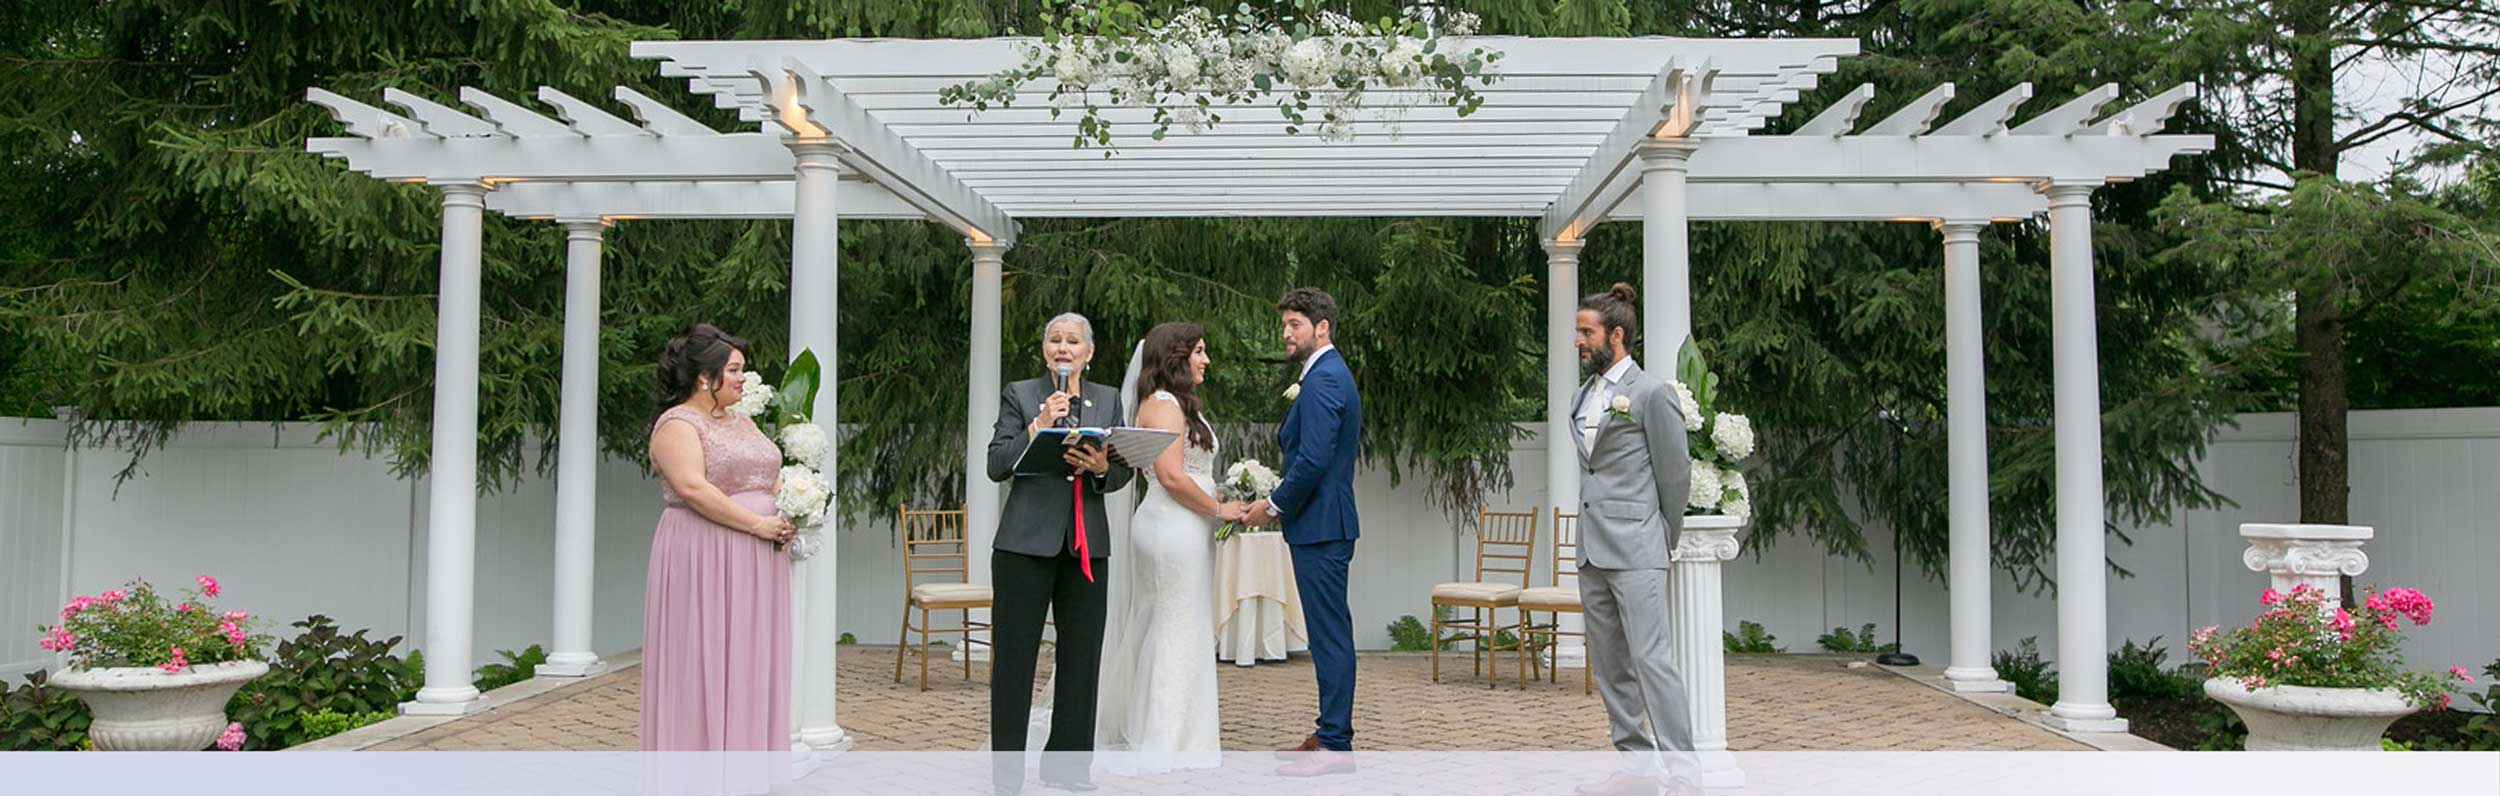 Outdoor New Jersey Wedding Ceremony Venue